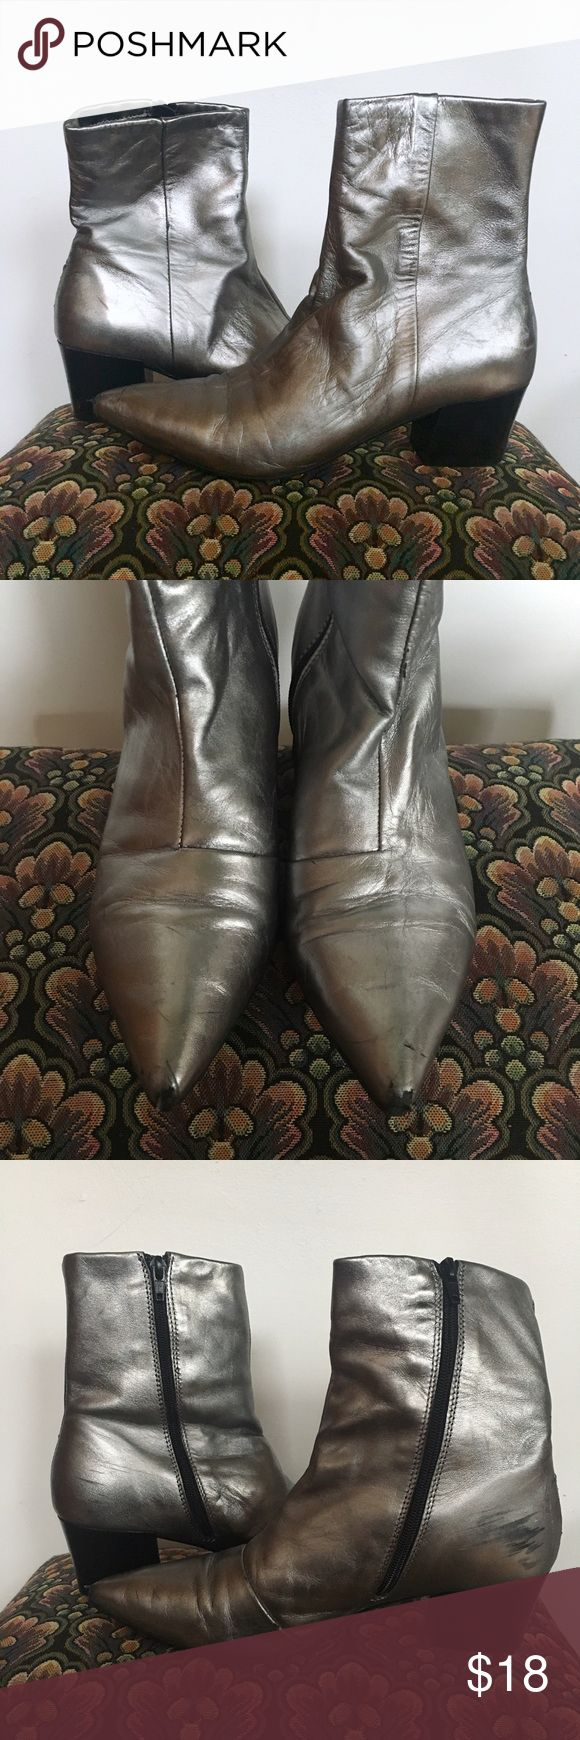 ASOS Leather Chelsea Boots Glam silver leather upper Chelsea boots!! Only worn a couple of times. Super comfy. ASOS Shoes Heeled Boots